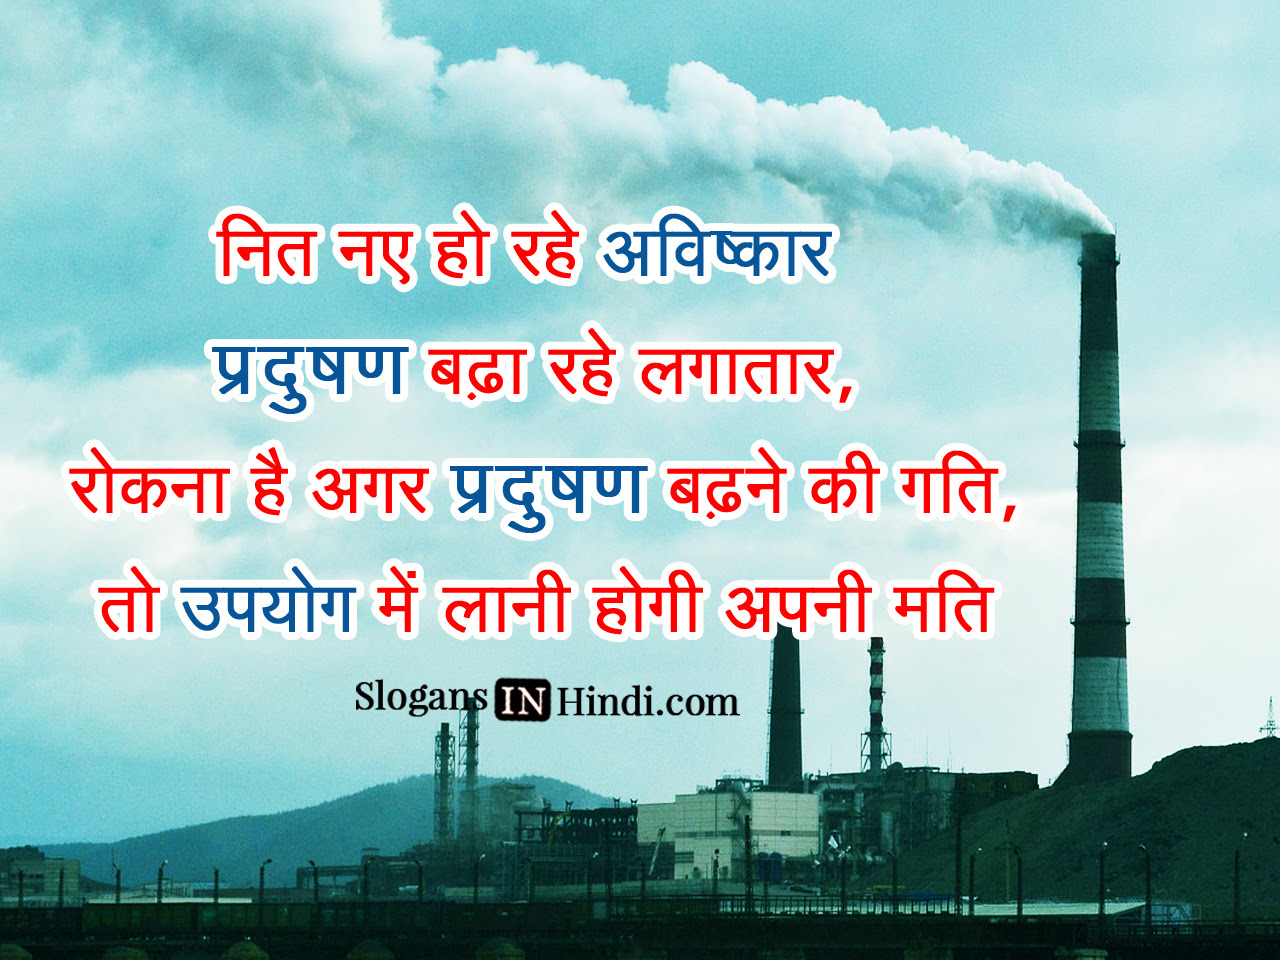 poster catchy slogans on air pollution